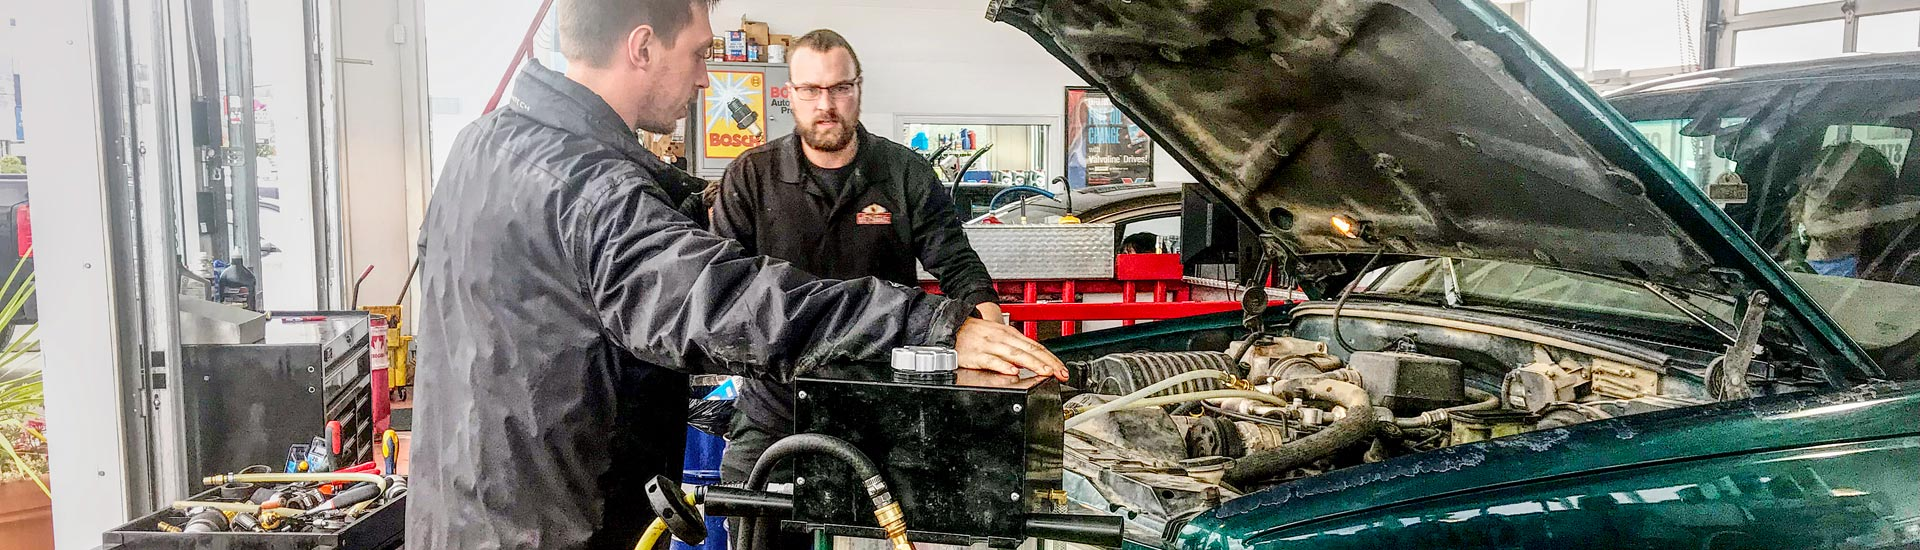 Mechanic fixing green car